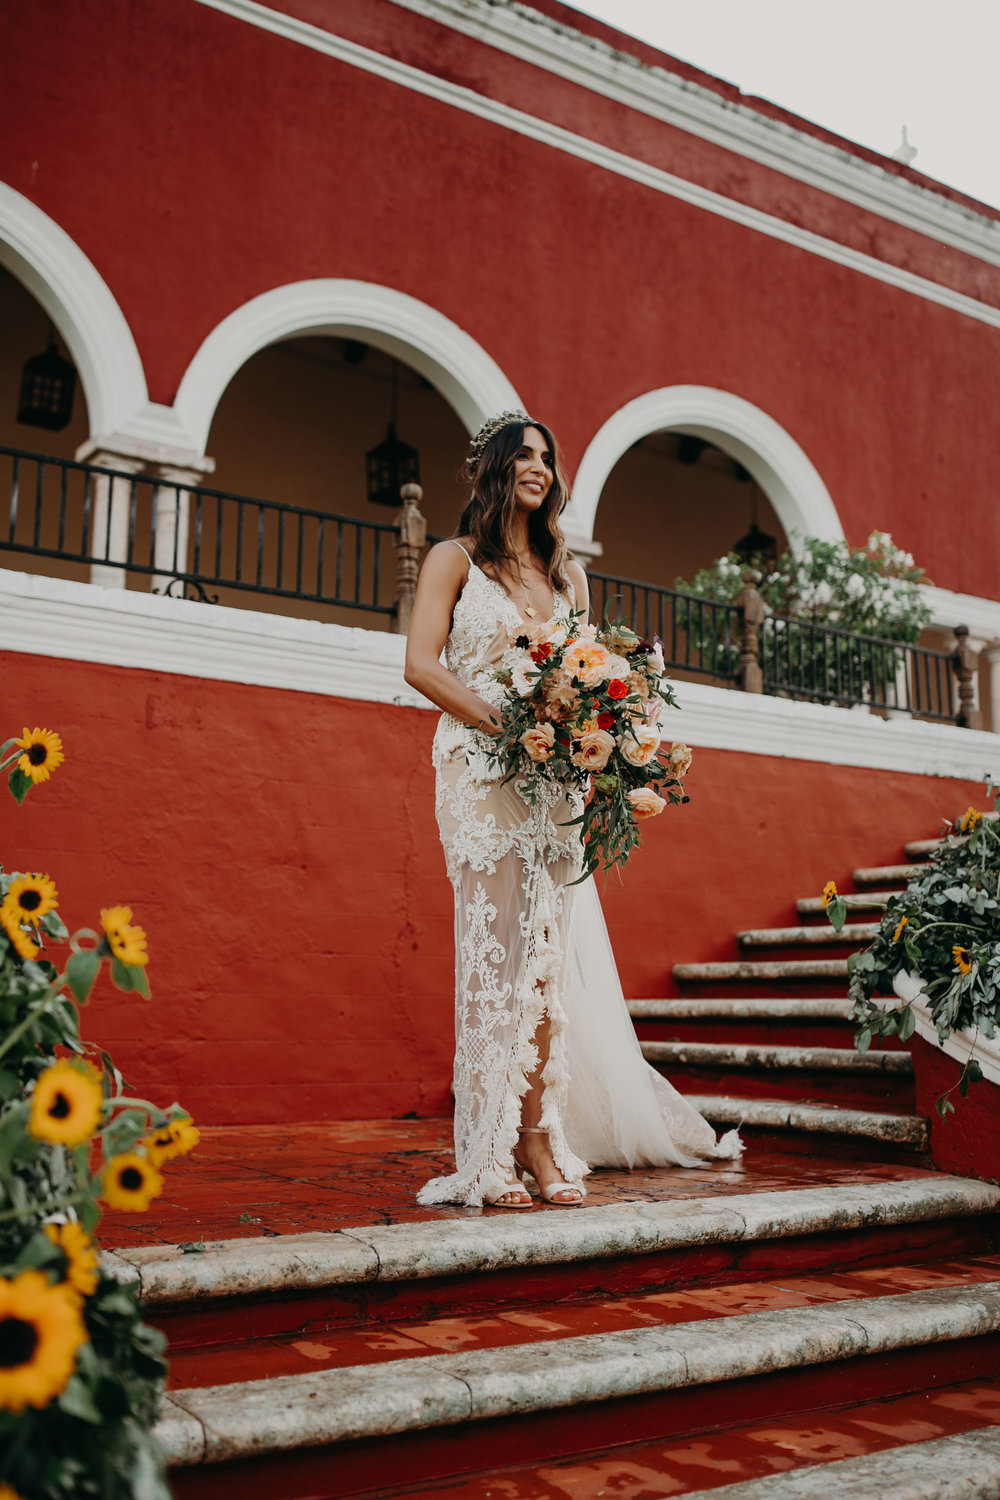 Hacienda Temozon Yucatan Mexico Wedding | Ida & Peter Emily Magers Photography-966.jpg